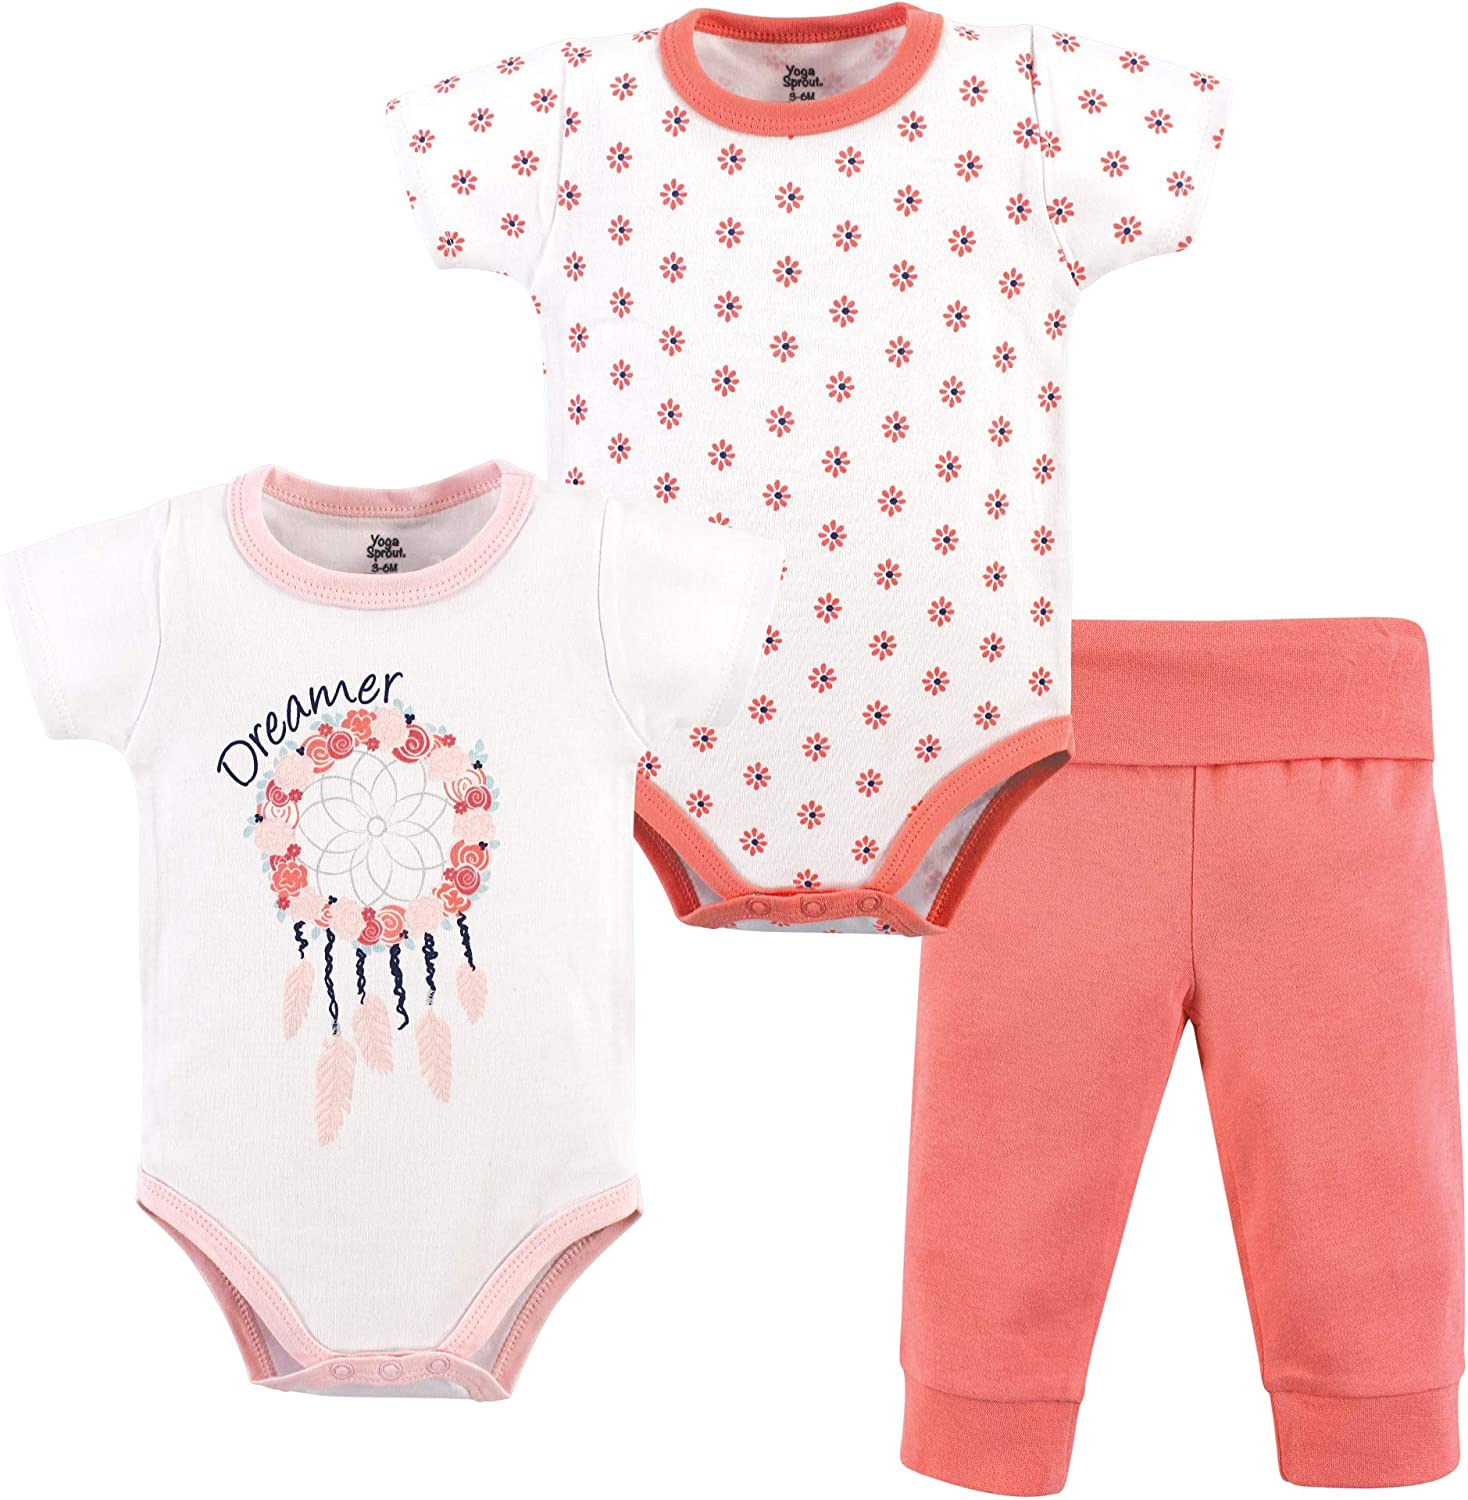 Yoga Sprout Unisex-Baby Bodysuit and Pant 3 Piece Set Layette Set